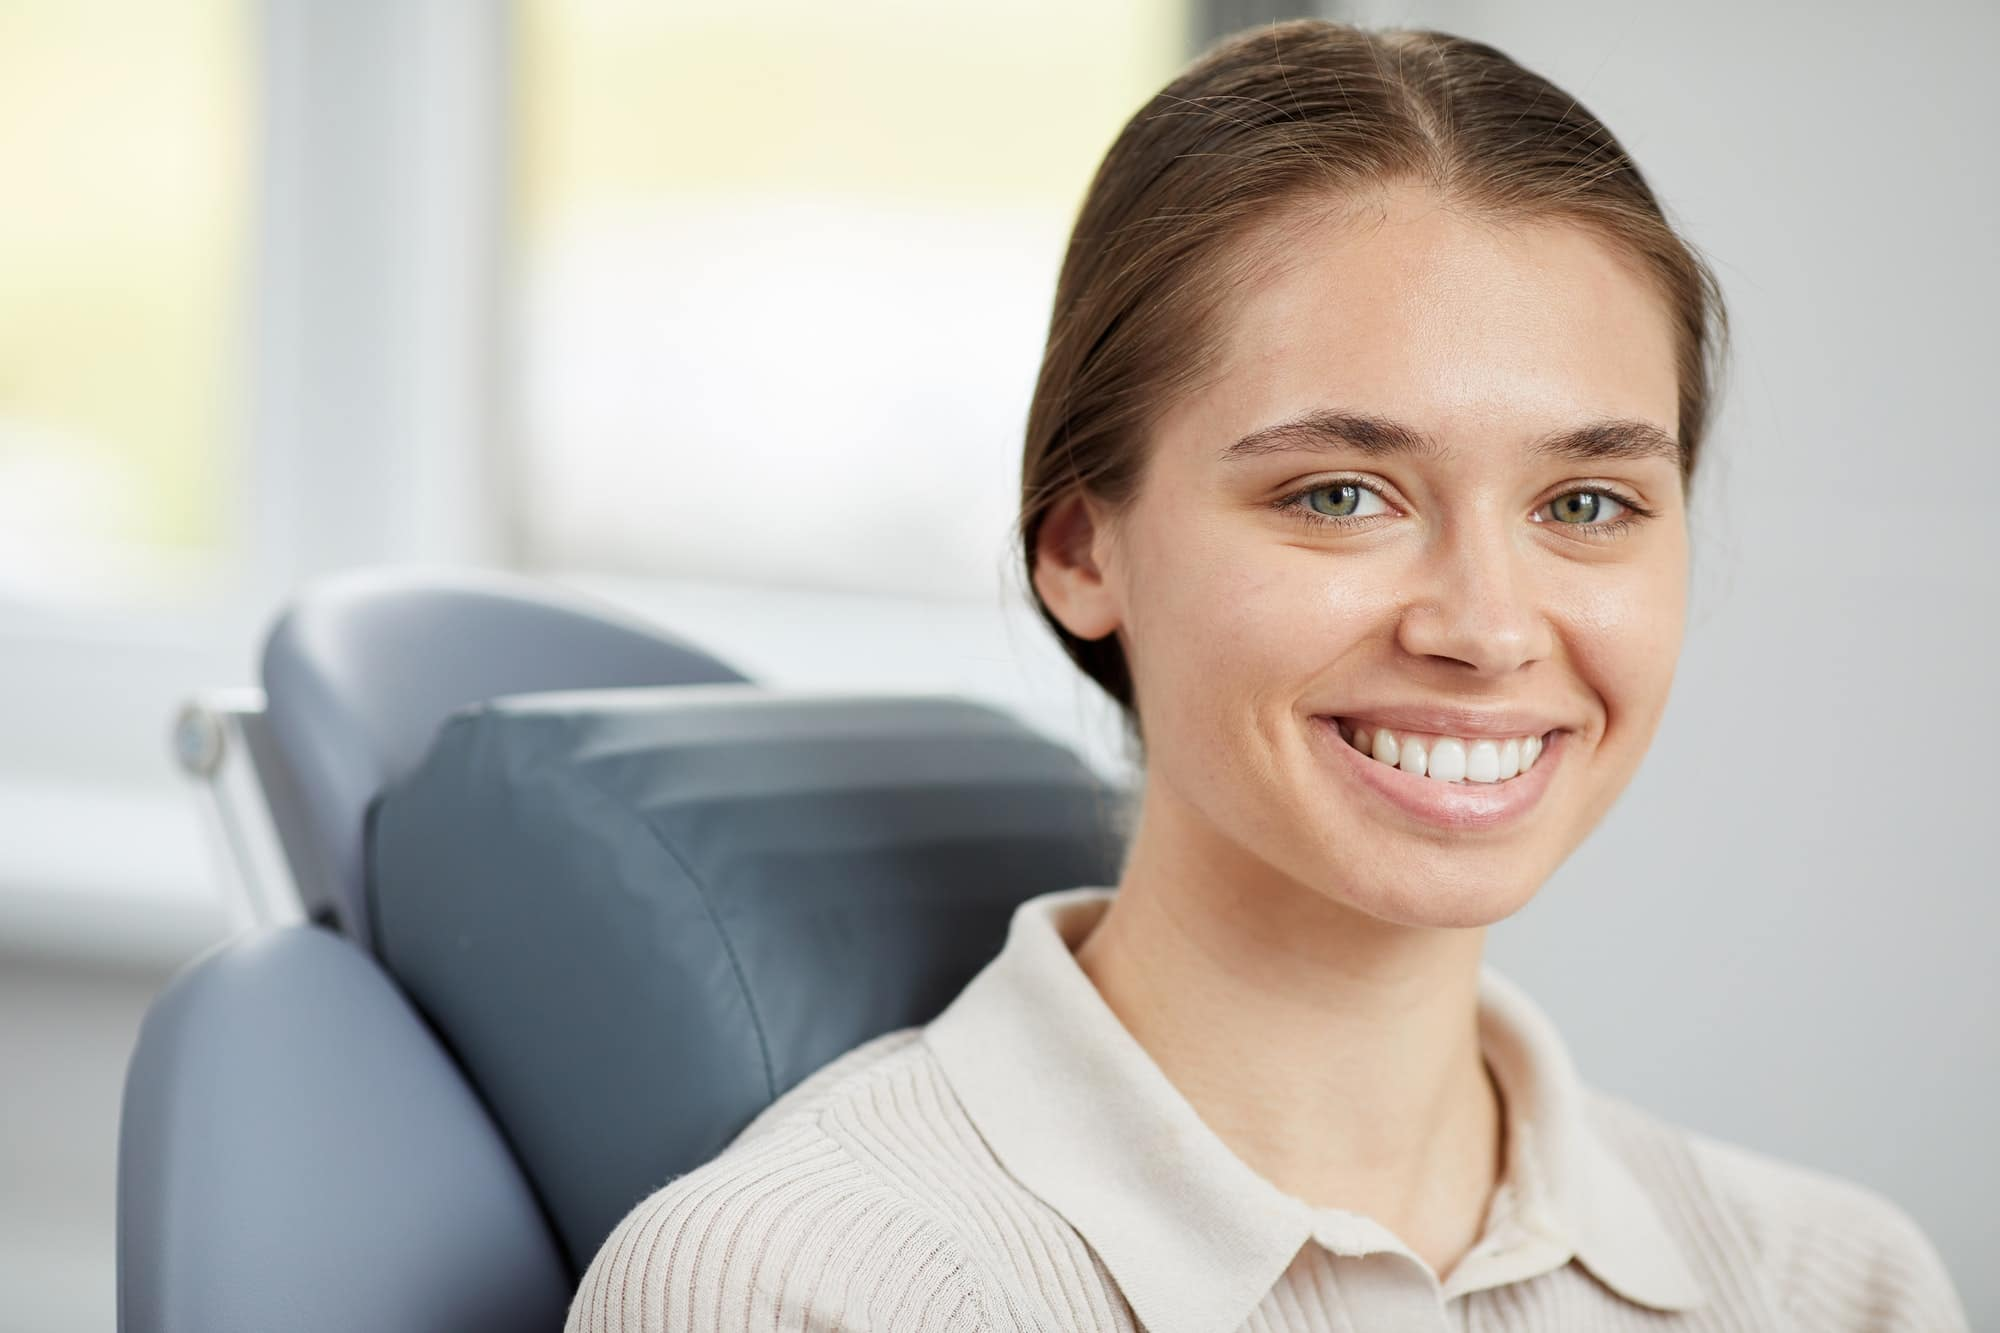 Pretty Young Woman in Dental Chair